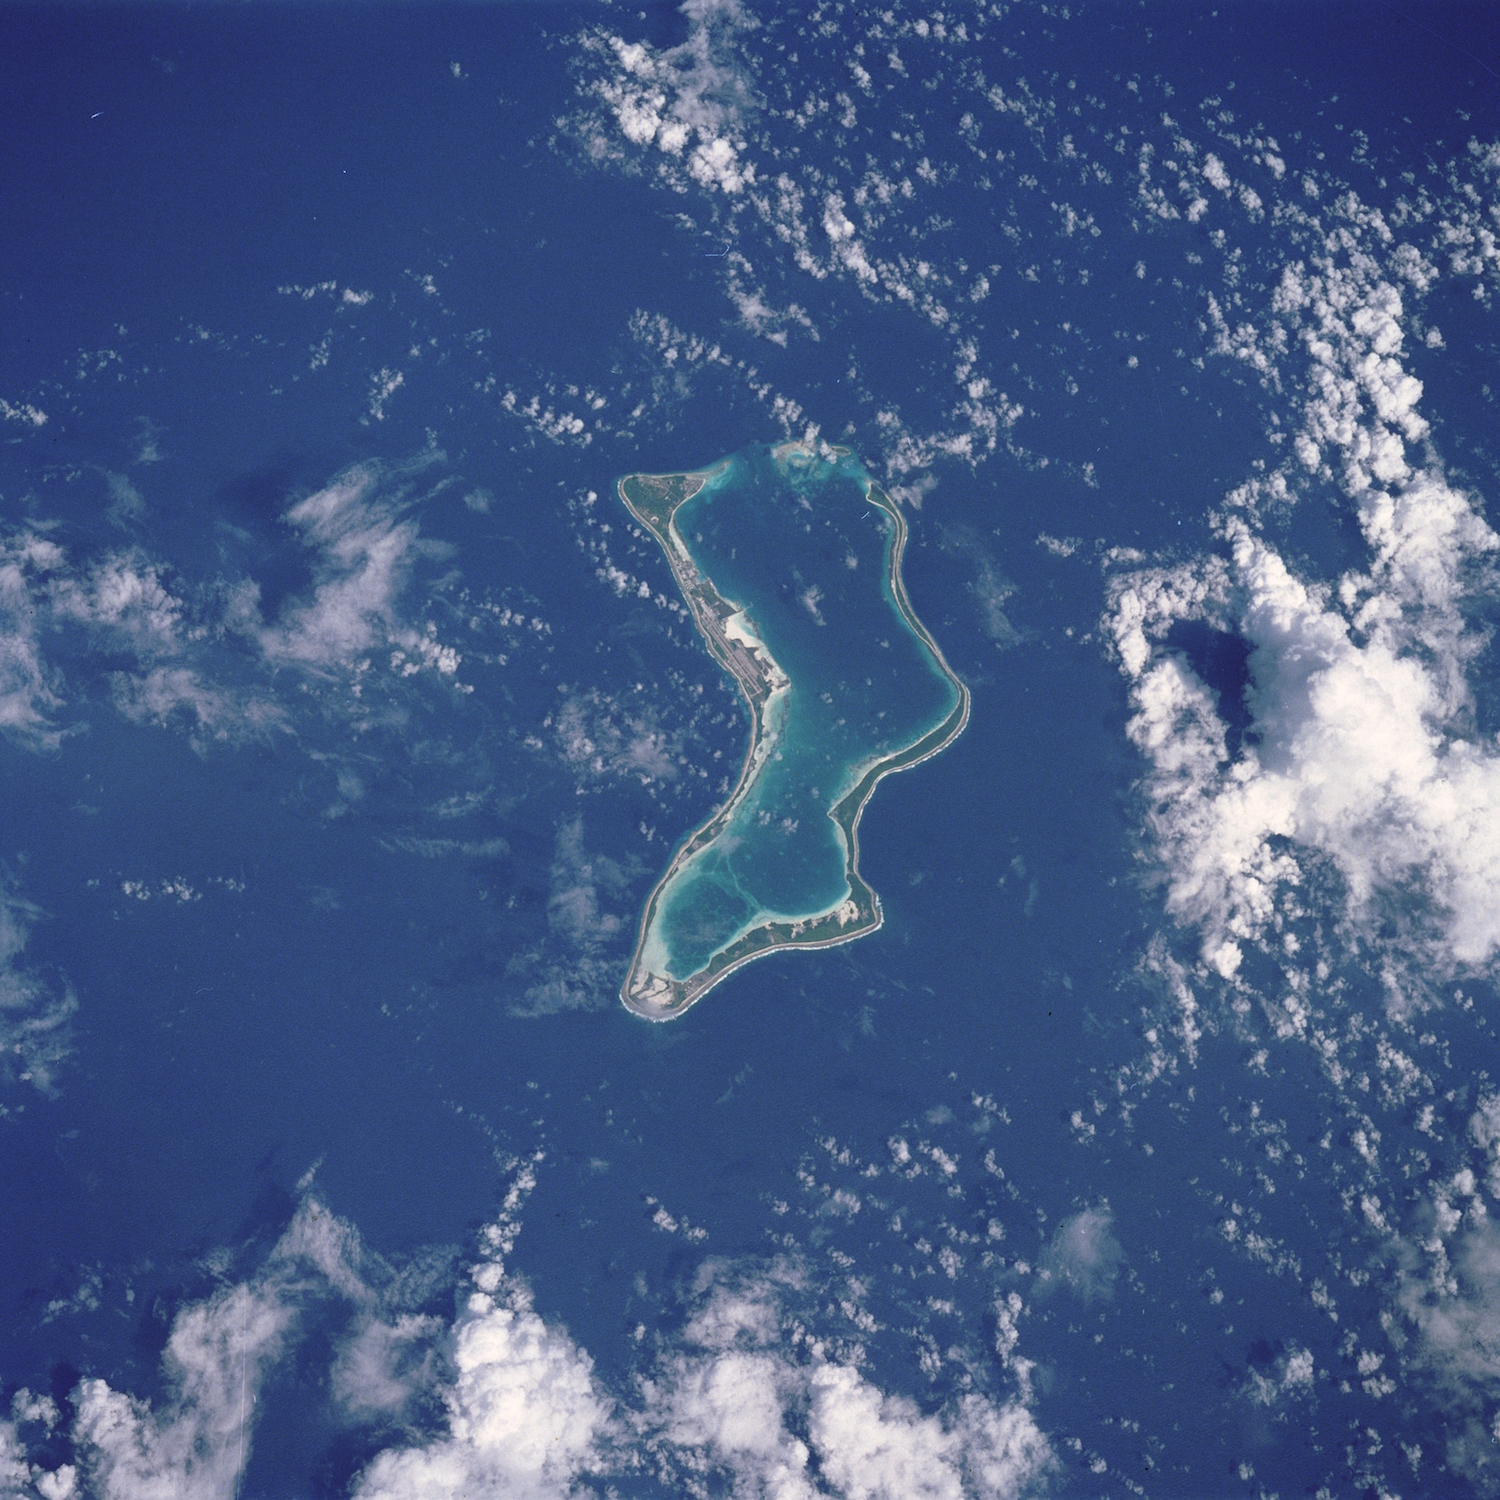 Diego Garcia, the largest of the coral atolls of the Chagos Archipelago.   NASA/Flickr  (CC BY NC 2.0)